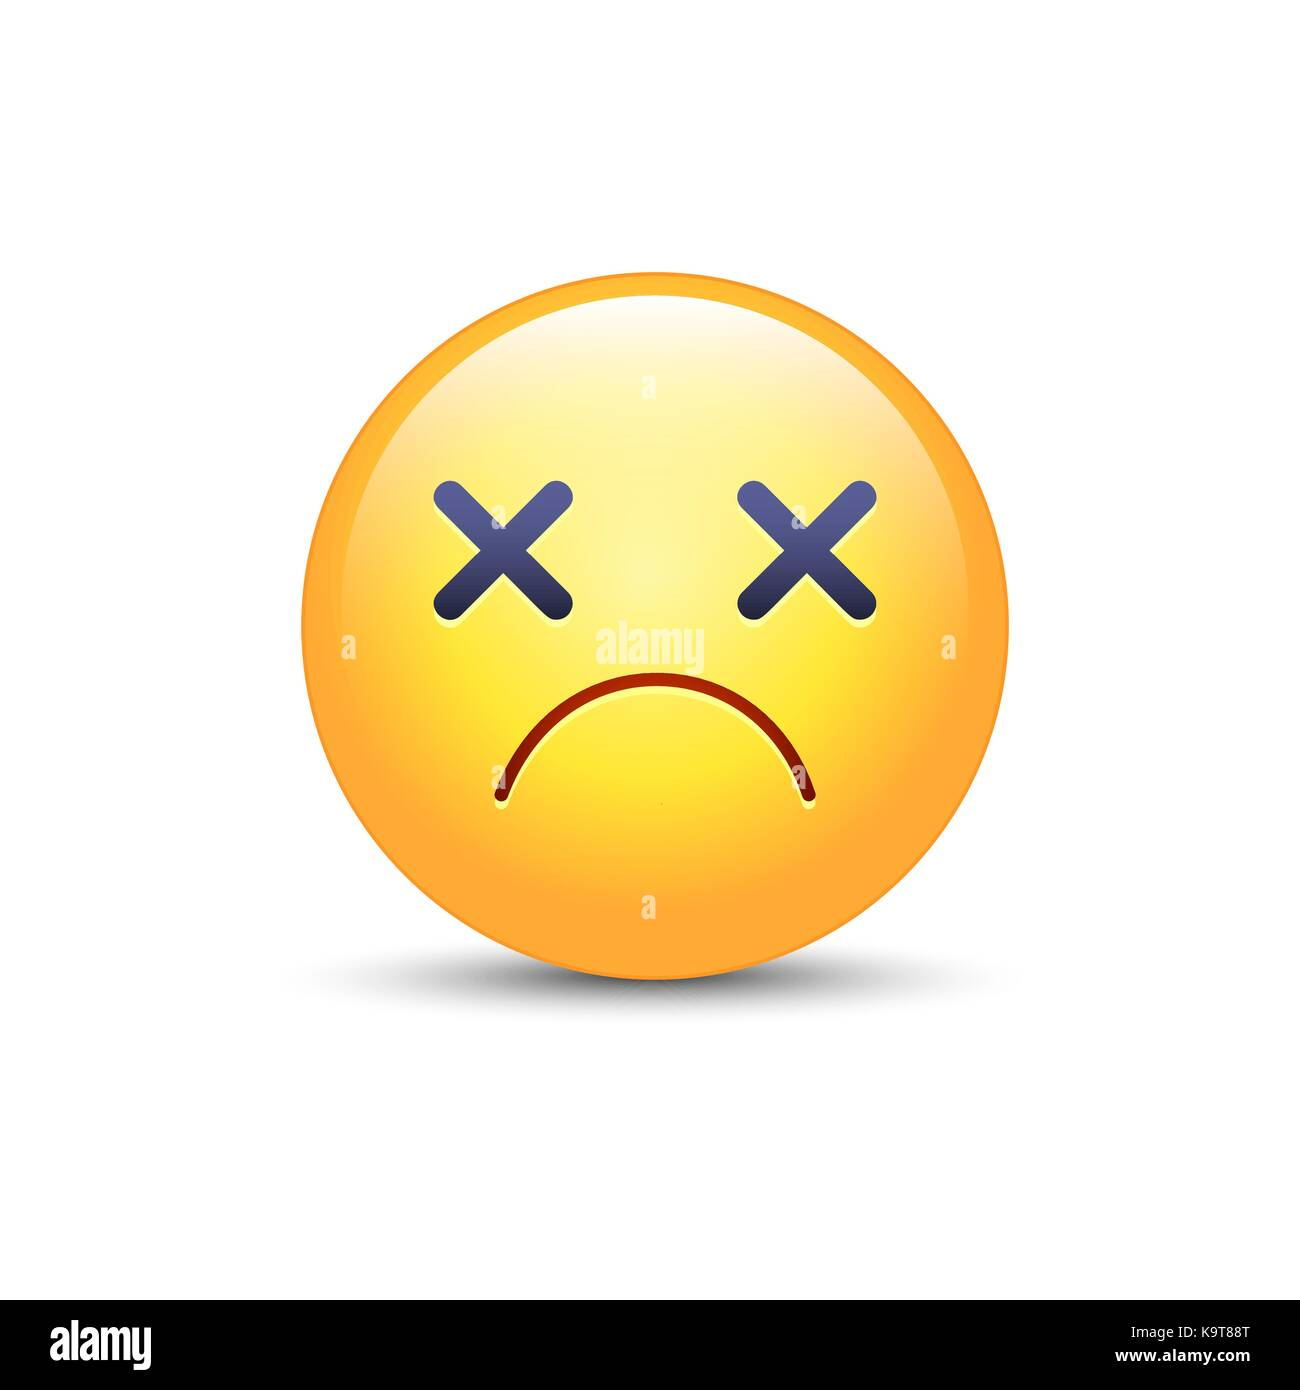 dizzy emoji face cross eyes emoticon vector icon sad cartoon